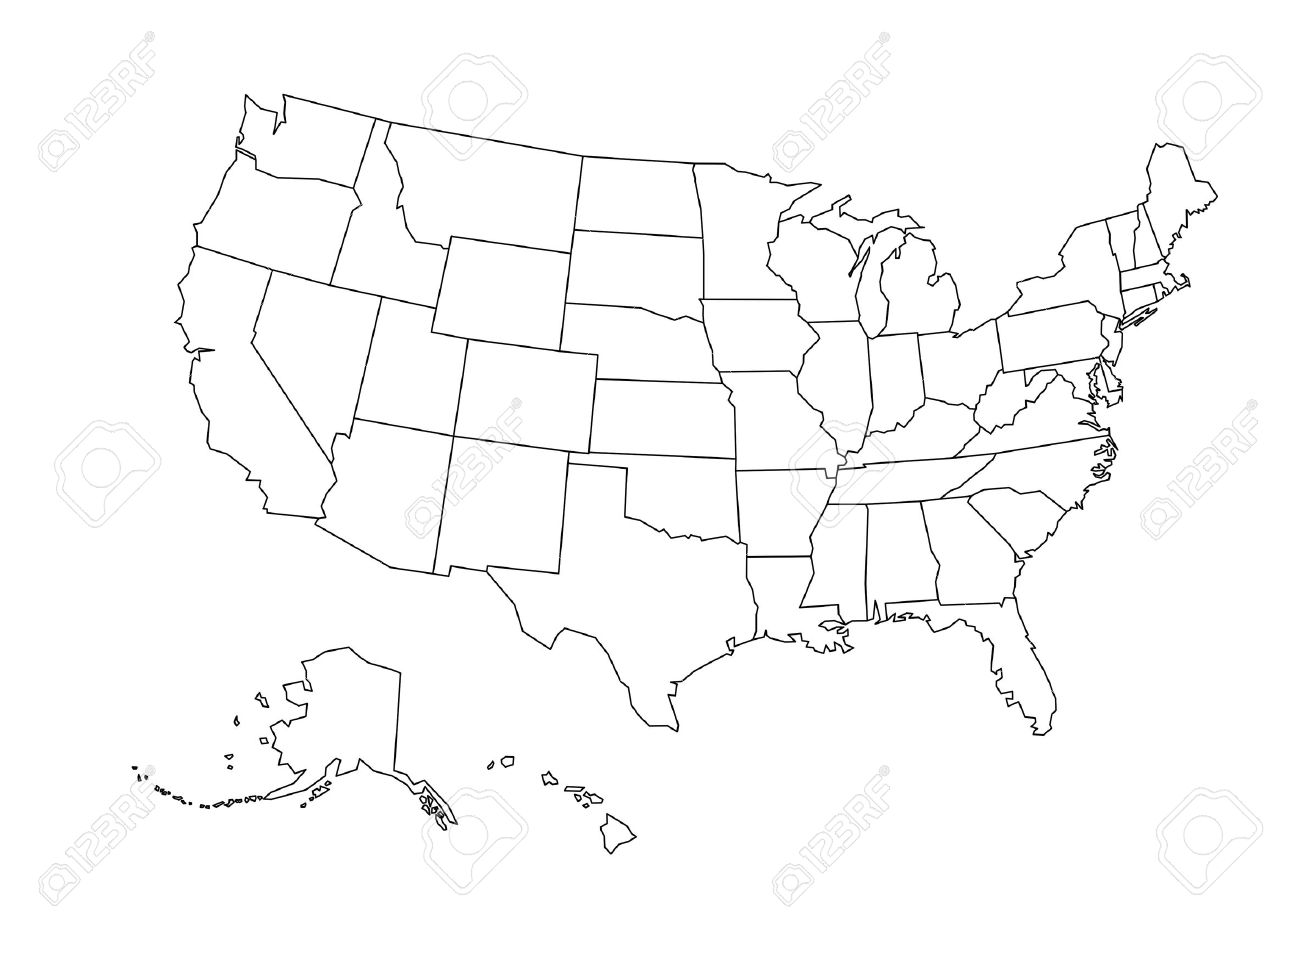 Blank Outline Map Of United States Of America. Simplified Vector ...